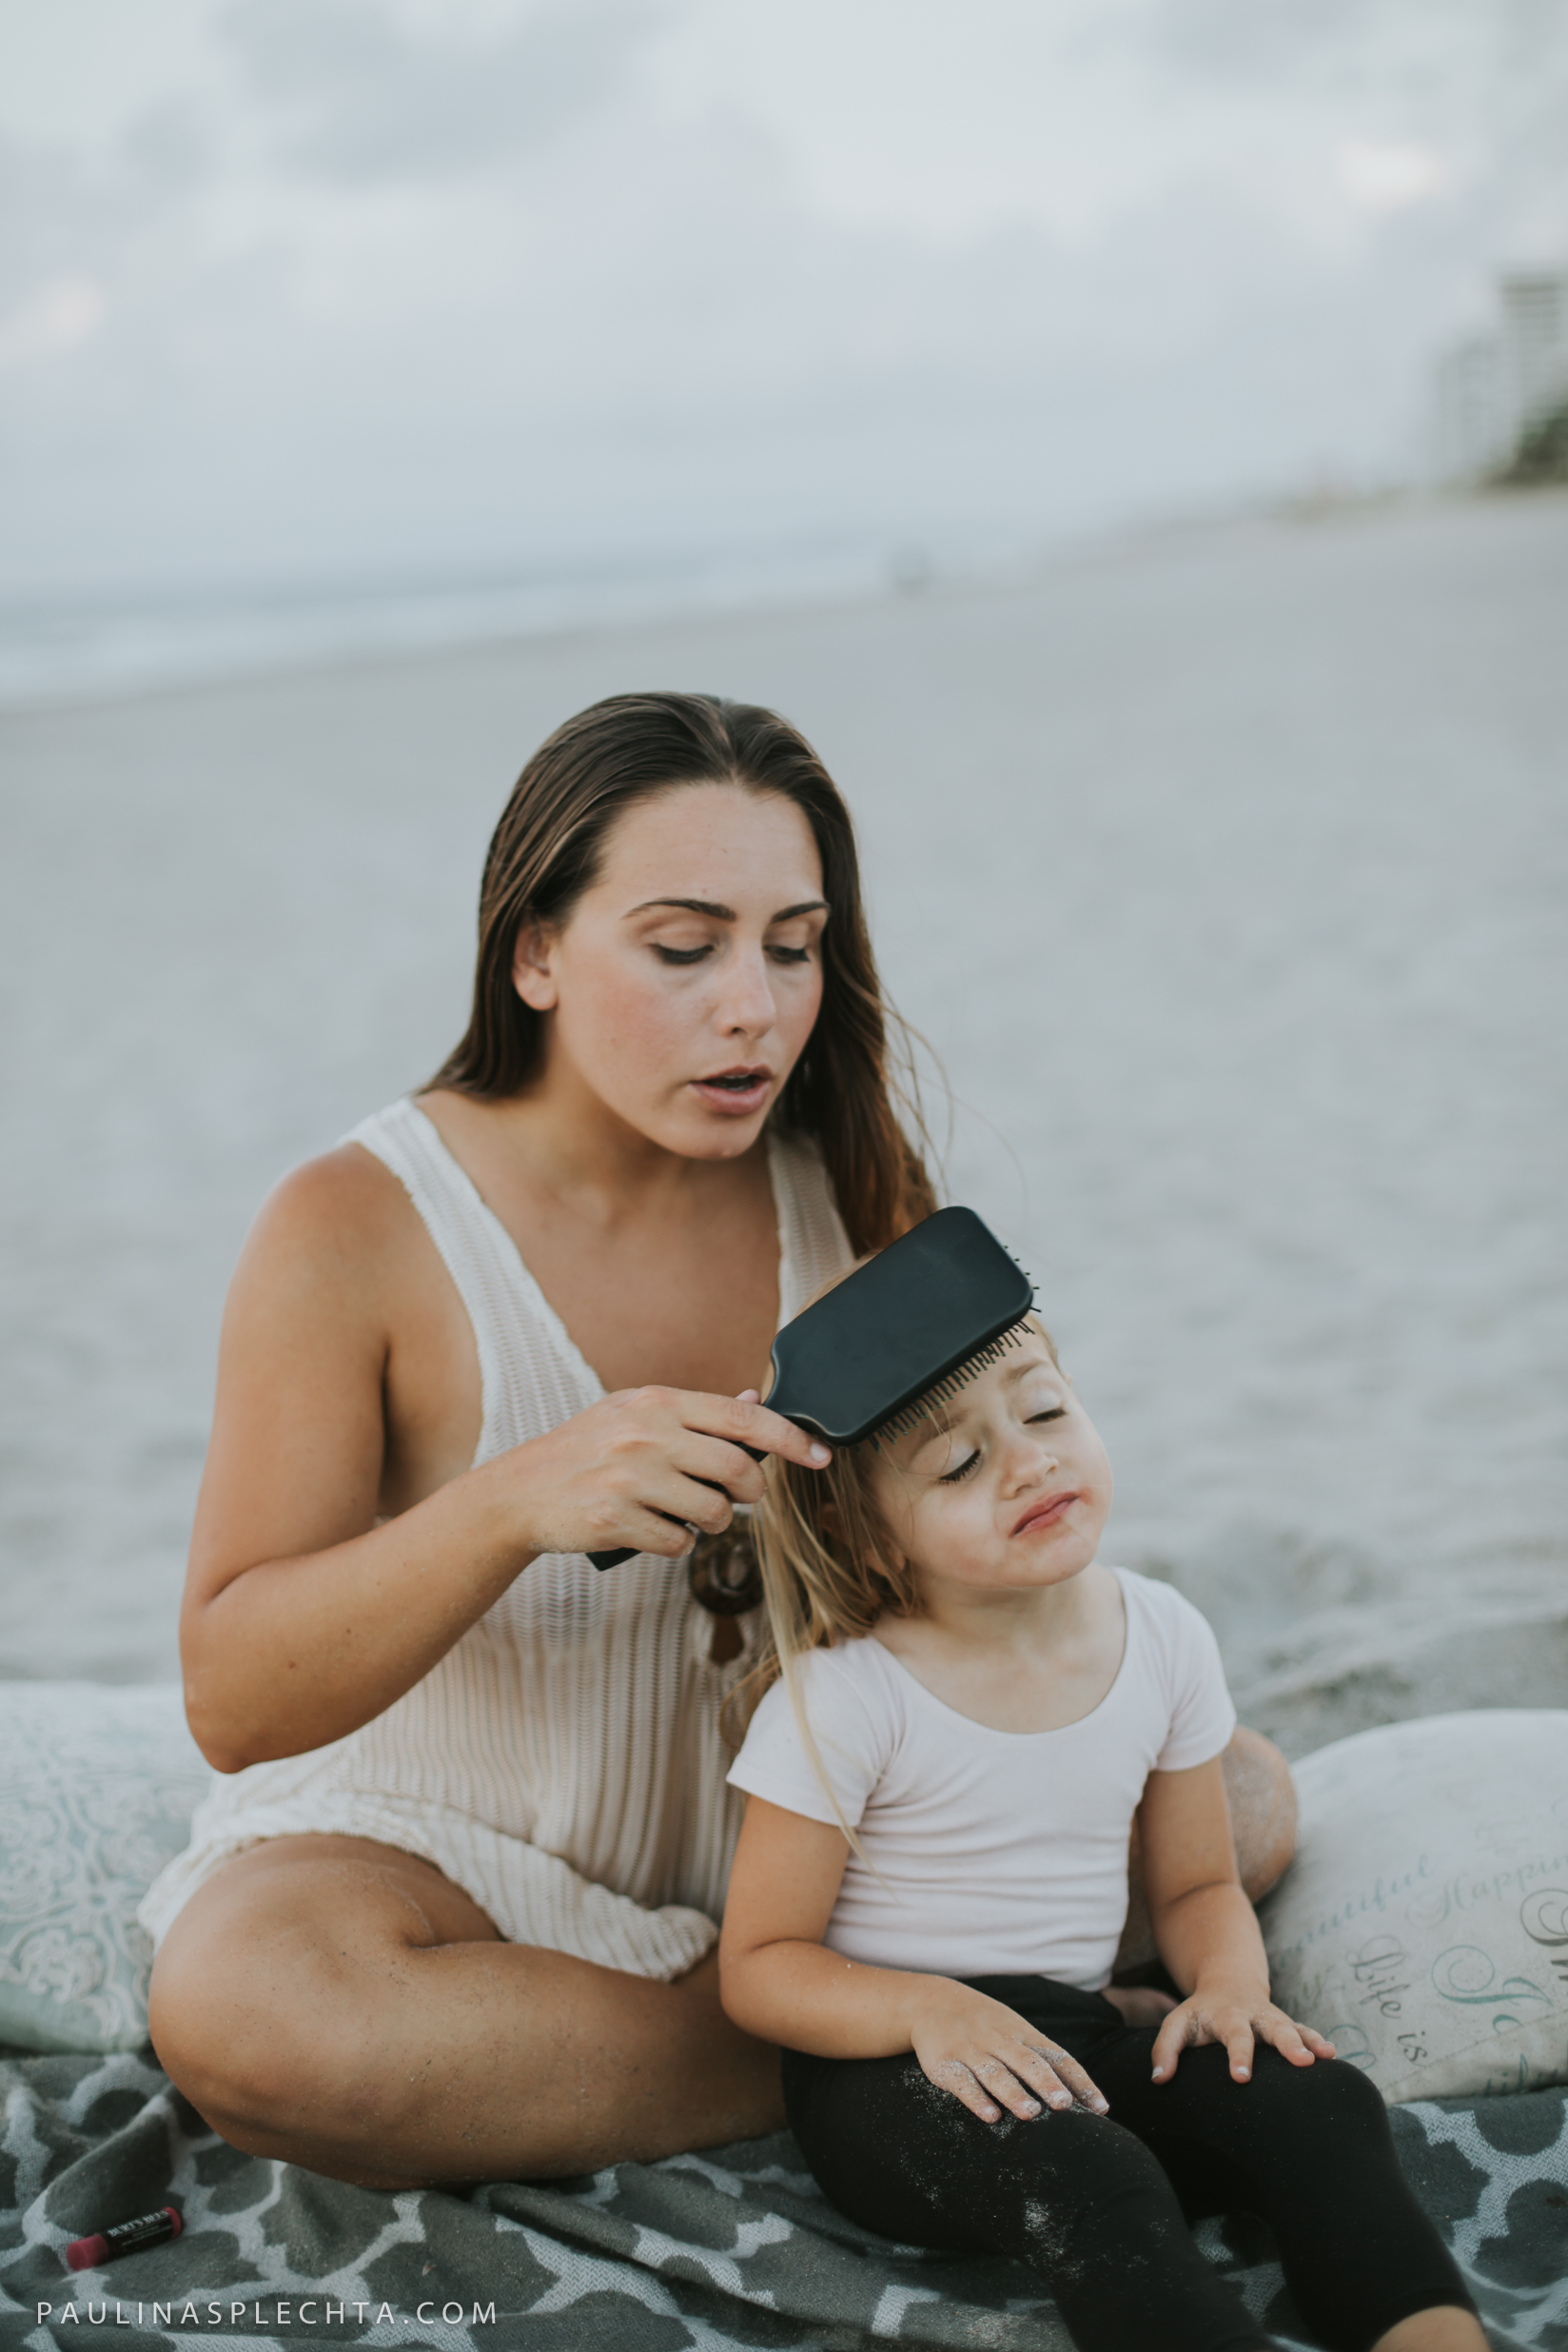 boca-raton-family-photographer-delray-beach-family-session-birthday-newborn-baby-park-session-photography-13.jpg